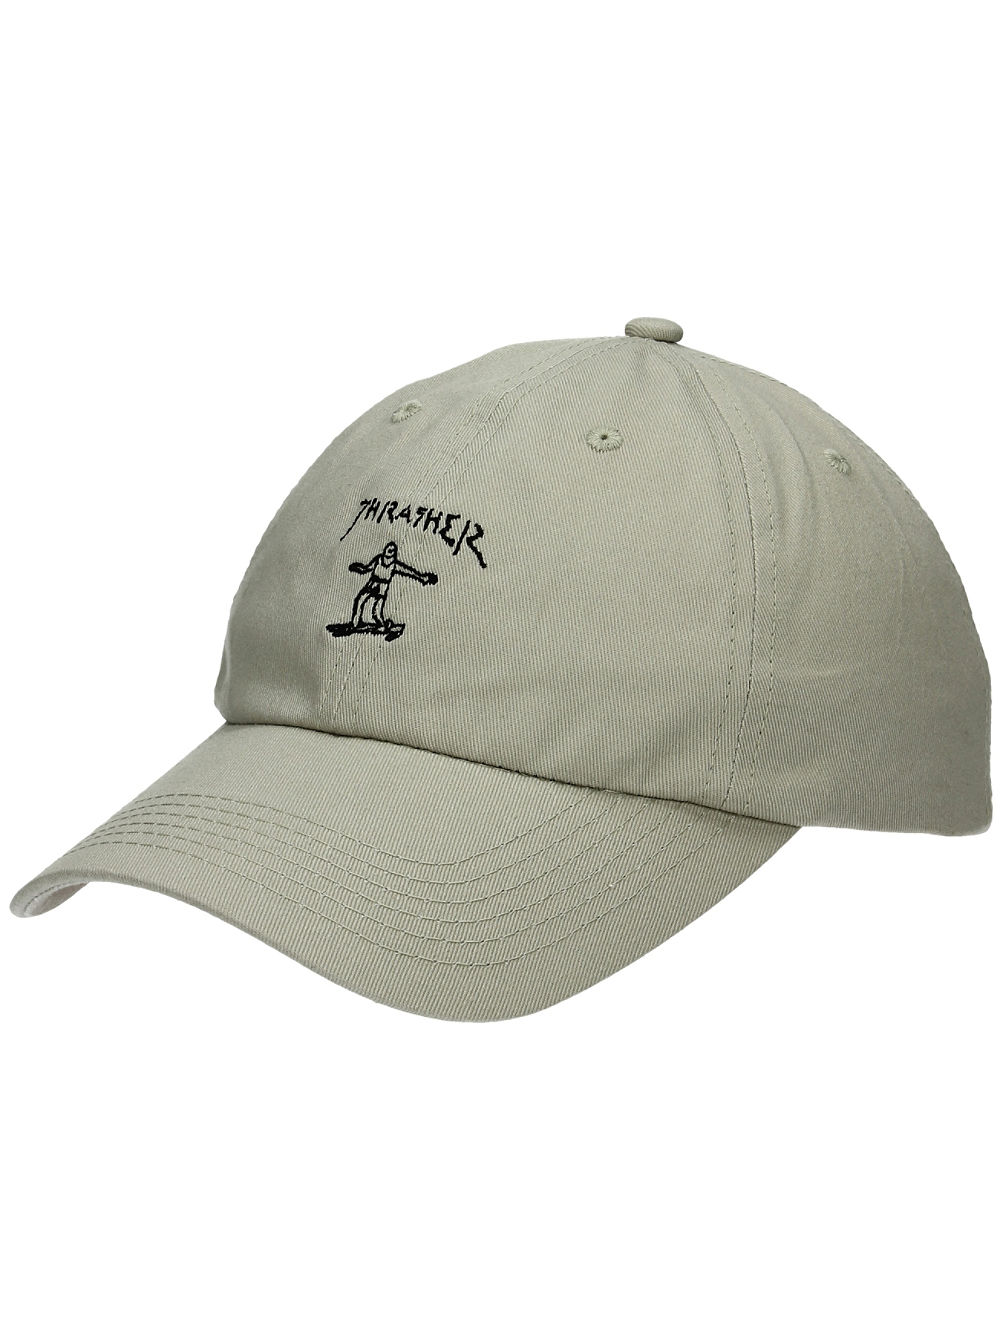 thrasher-gonz-old-timer-dads-cap